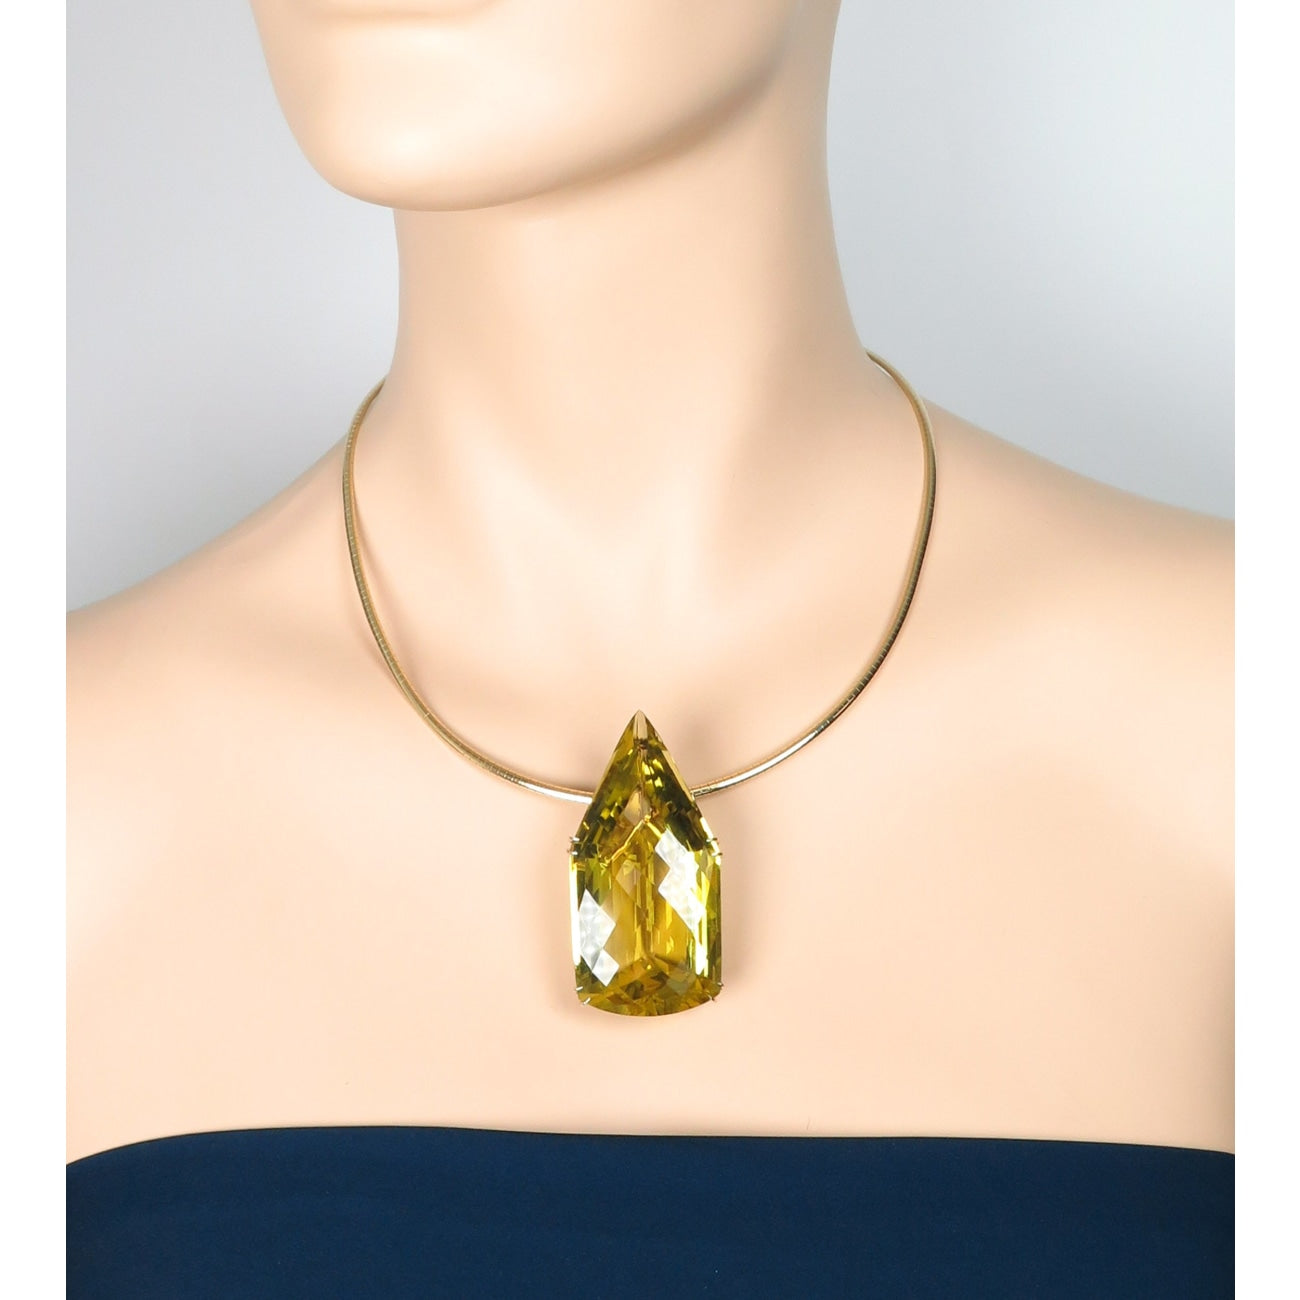 Estate Jewelry Estate Jewelry - Lemon Quartz Yellow Gold Pendant | Manfredi Jewels